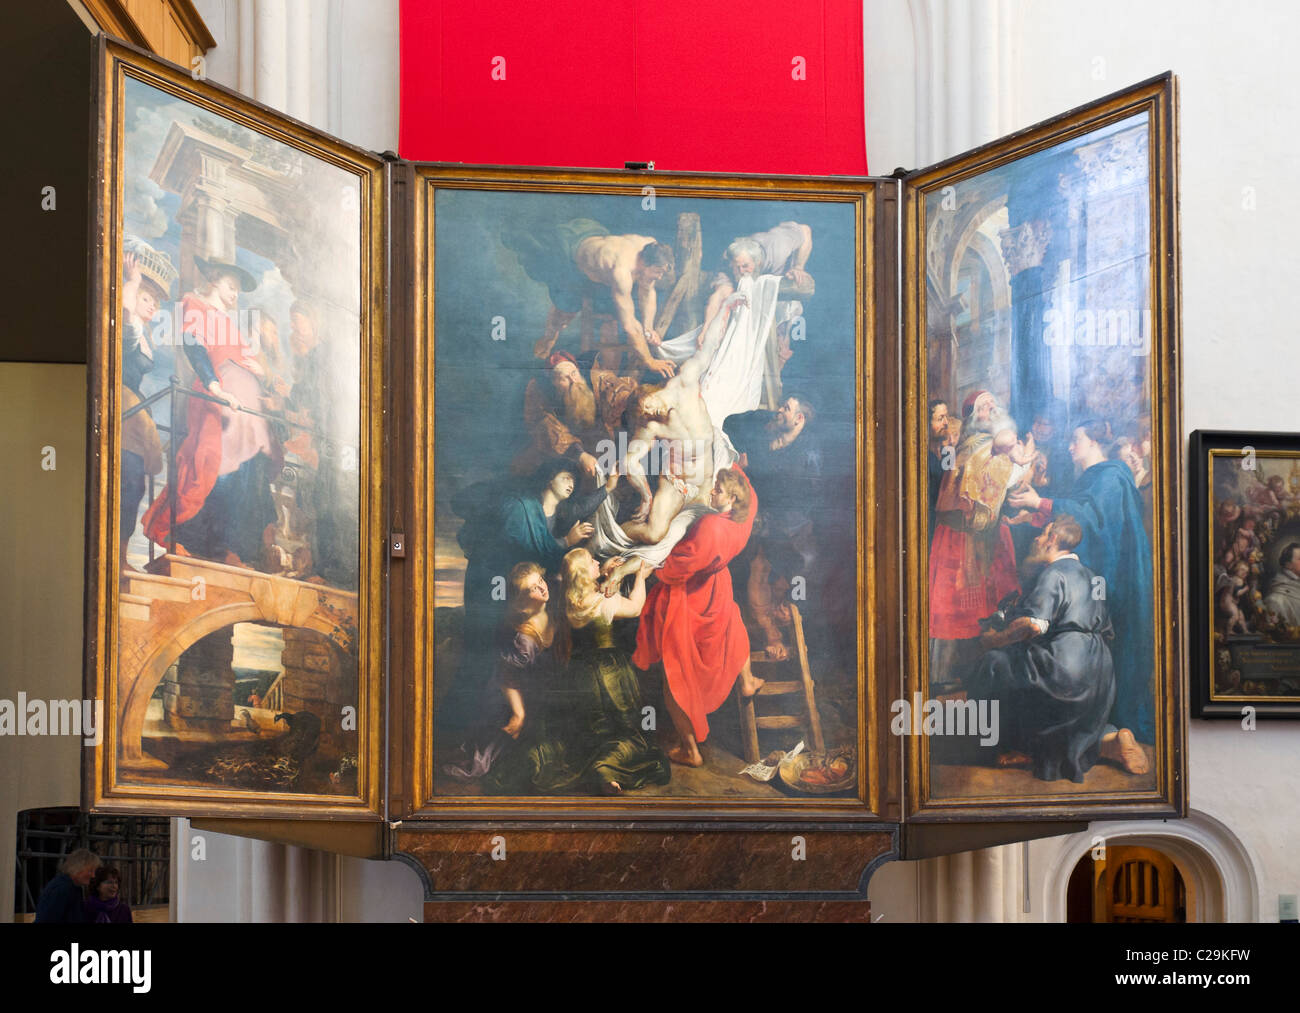 The Descent from the Cross by Peter Paul Rubens, Onze Lieve Vrouwekathedraal (Cathedral of Our Lady), Antwerp, Belgium - Stock Image